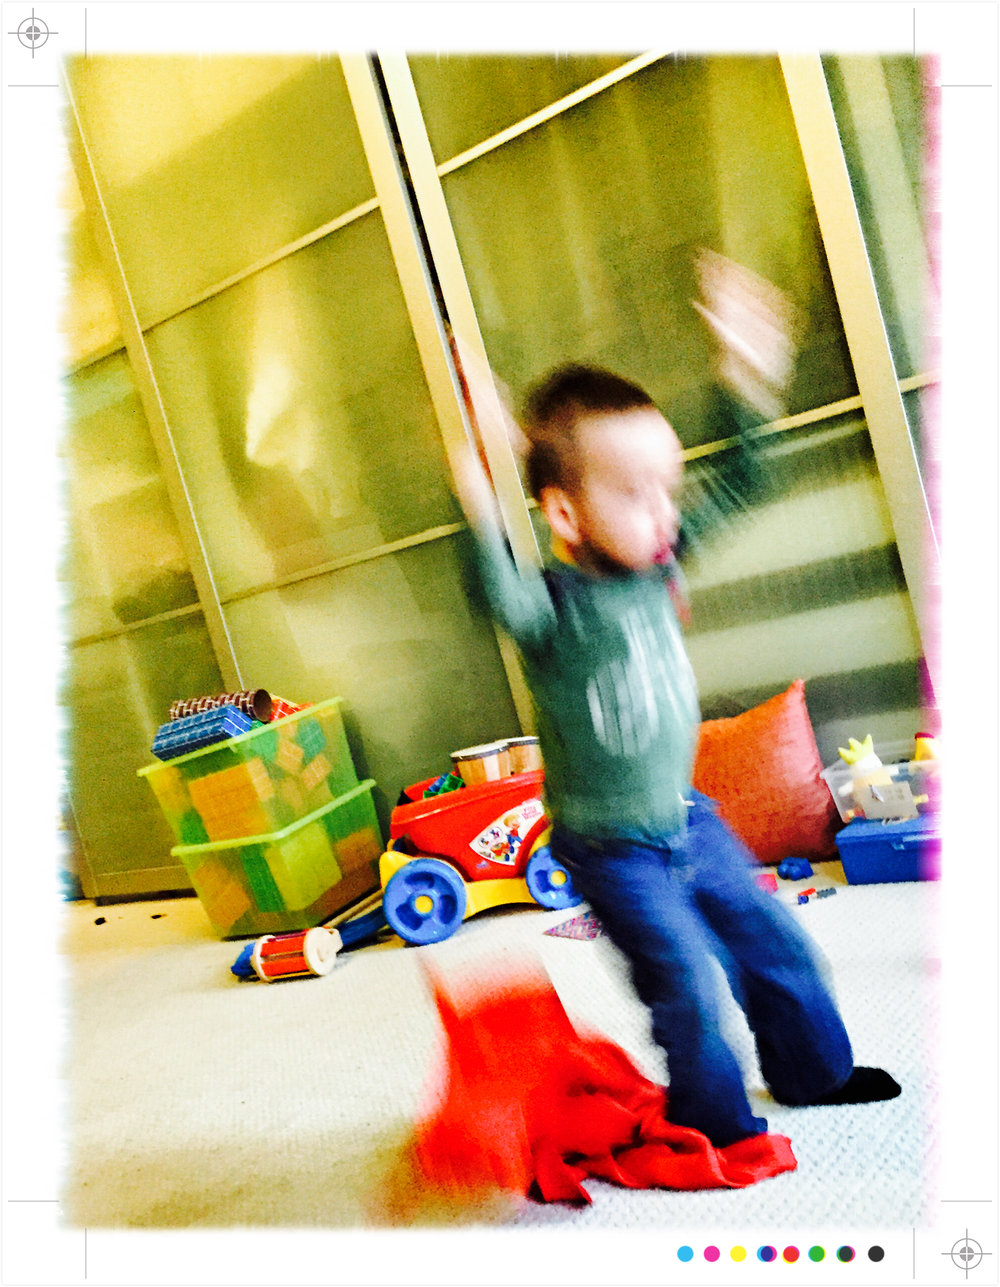 Typical motion blur (click to enlarge)